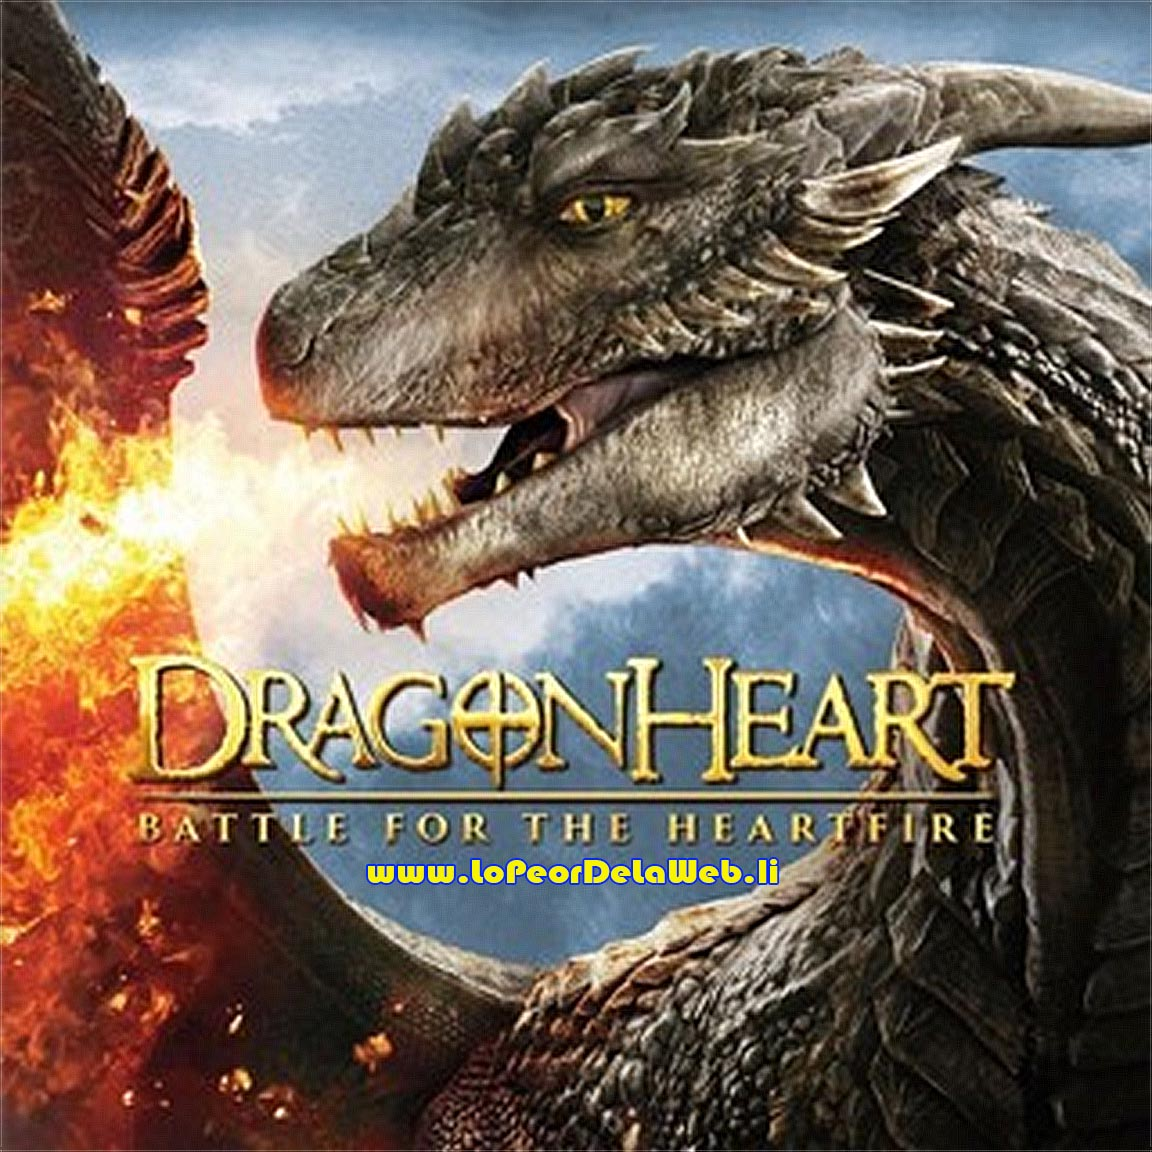 Dragonheart: Battle for the Heartfire (2017 - 1080p)